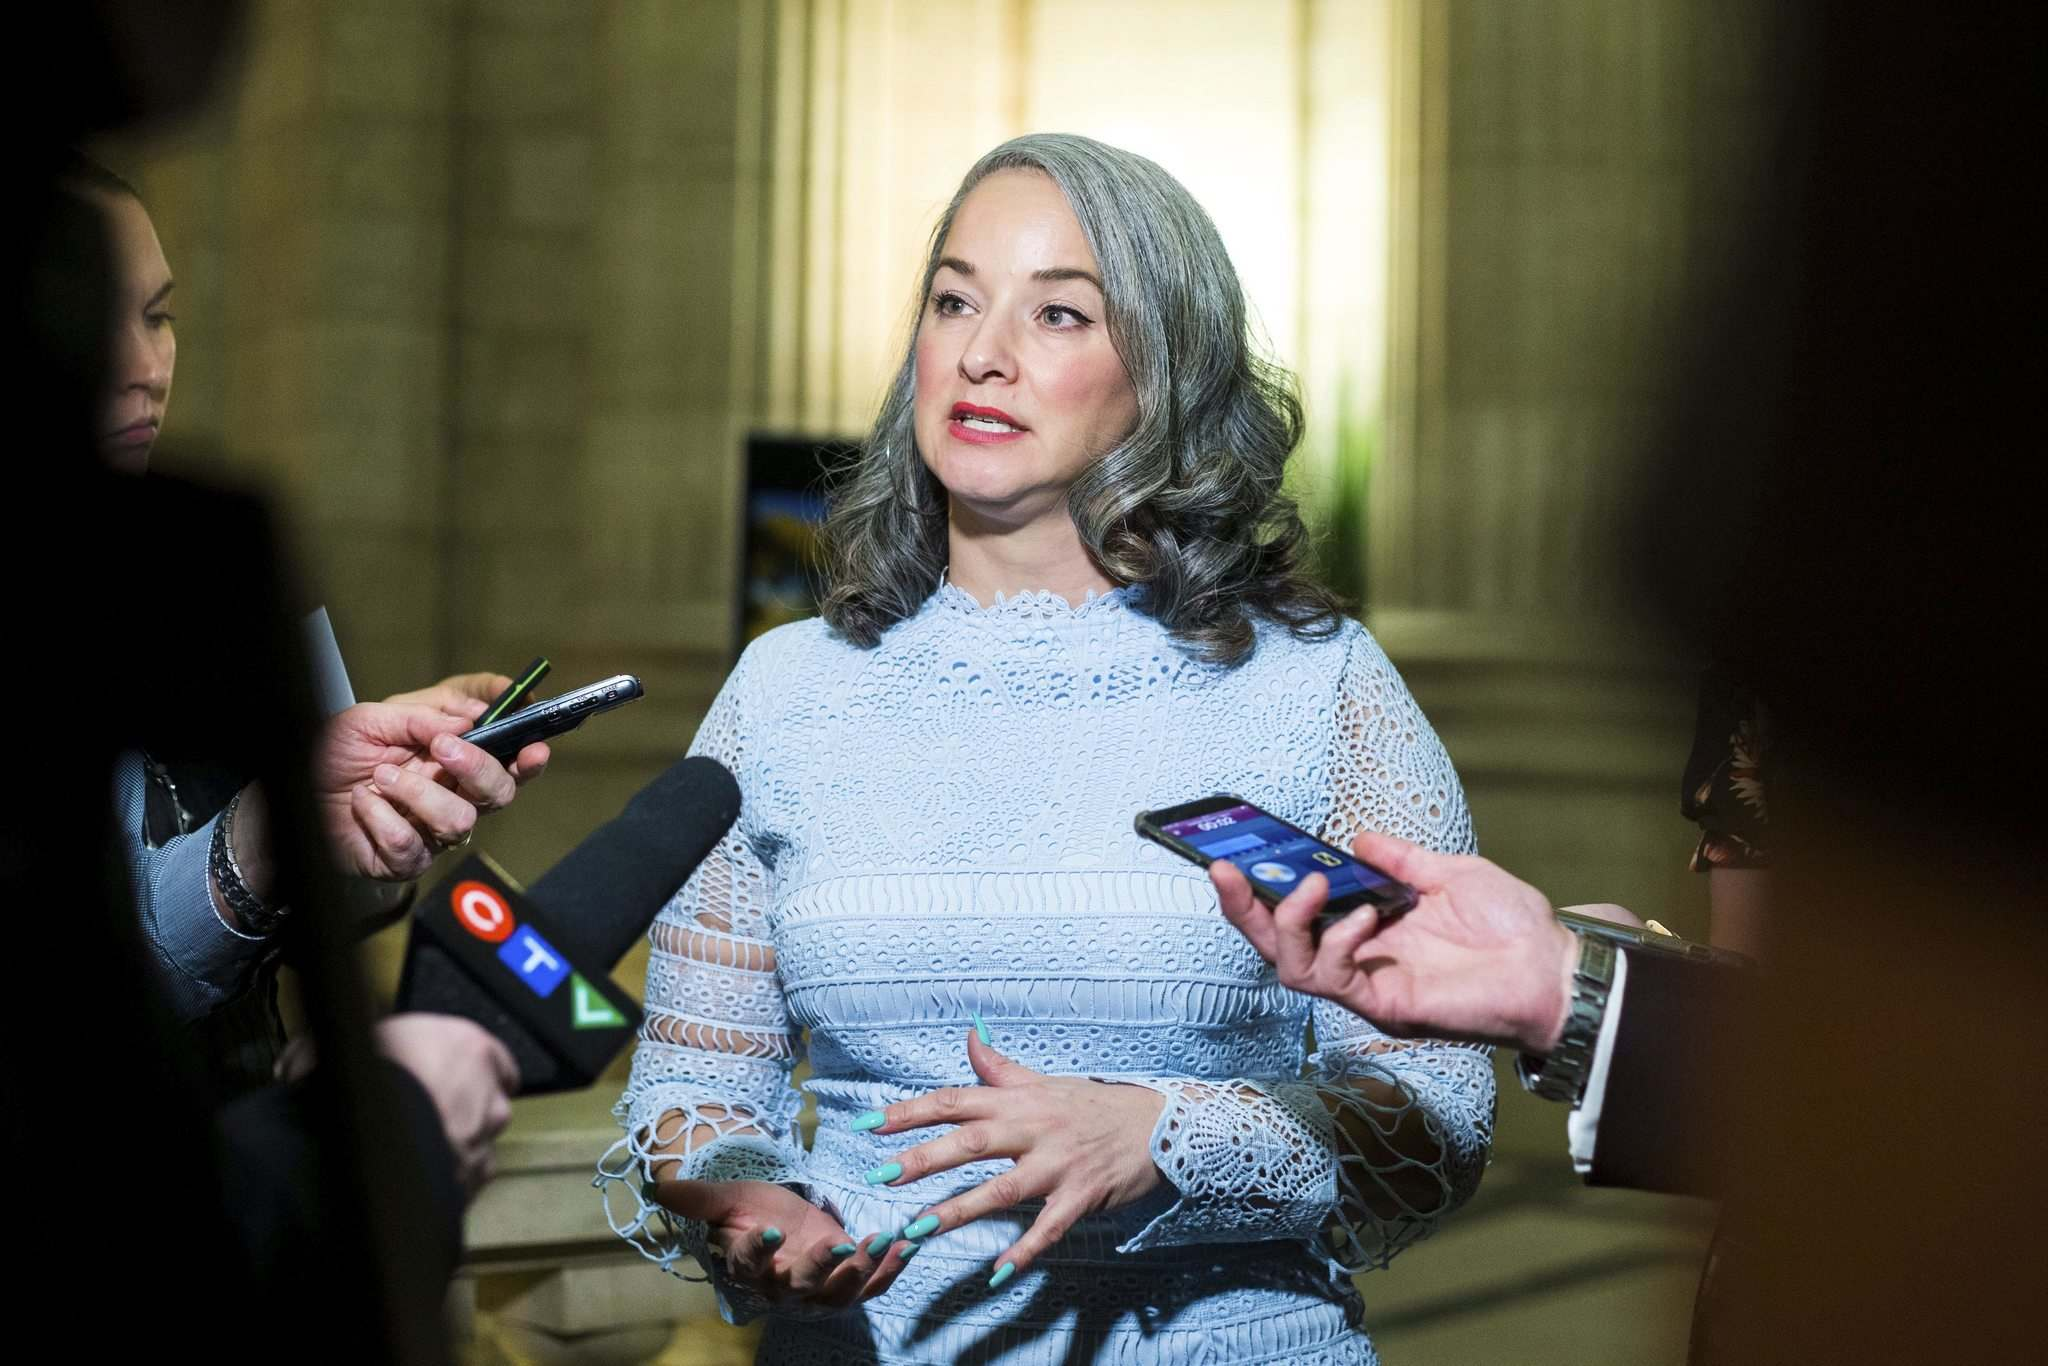 NDP MLA Nahanni Fontaine introduced a bill that would limit protests immediately surrounding facilities that provide abortions. (Mikaela MacKenzie / Winnipeg Free Press files)